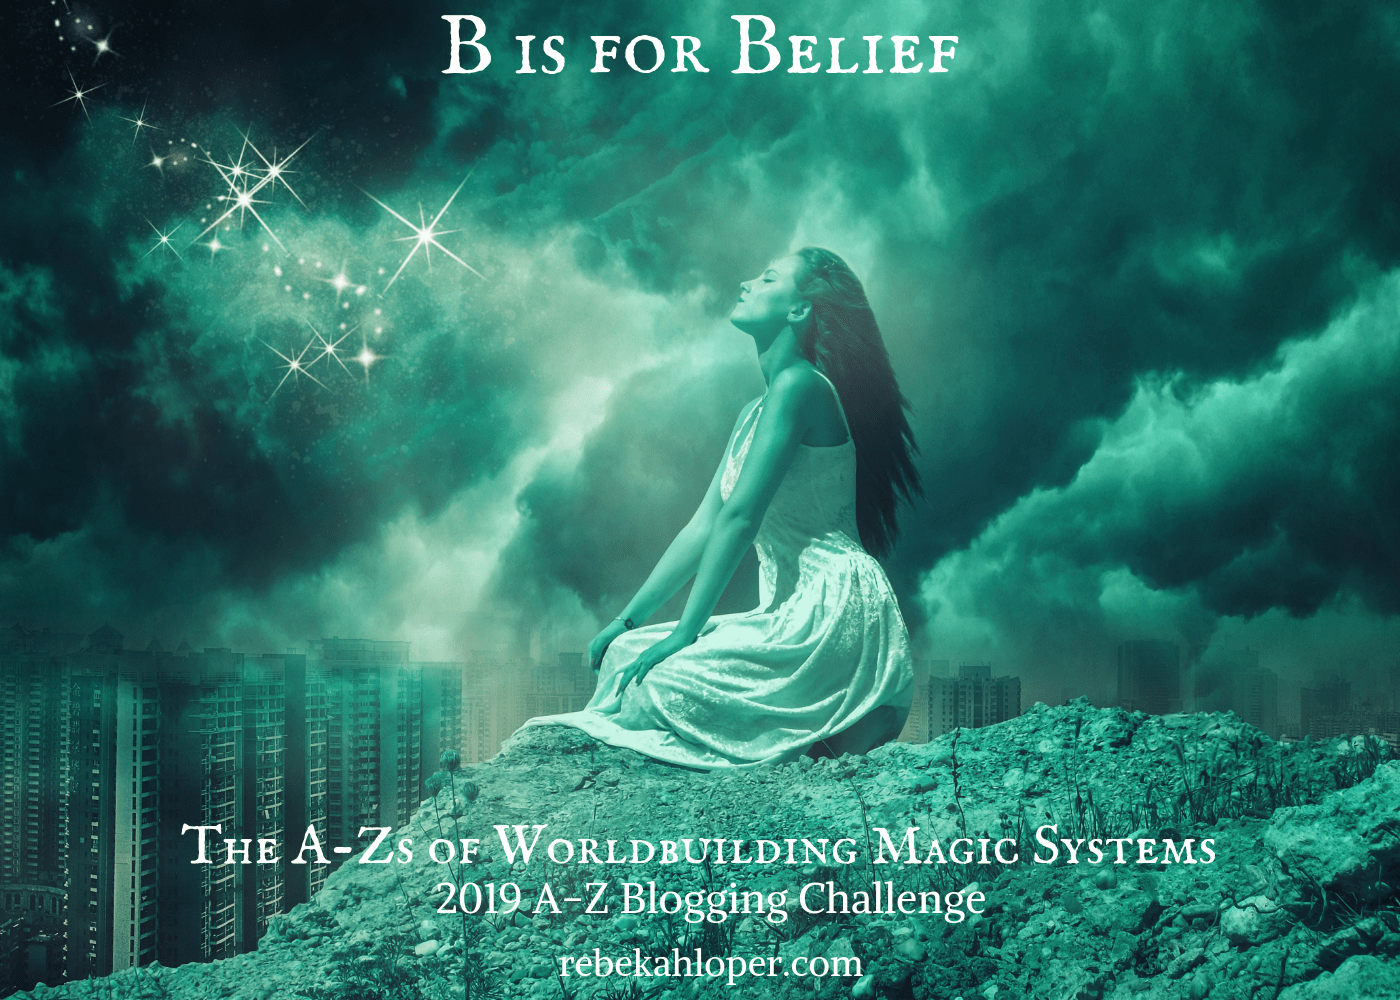 B is for Belief, A-Zs of Worldbuilding Magic Systems